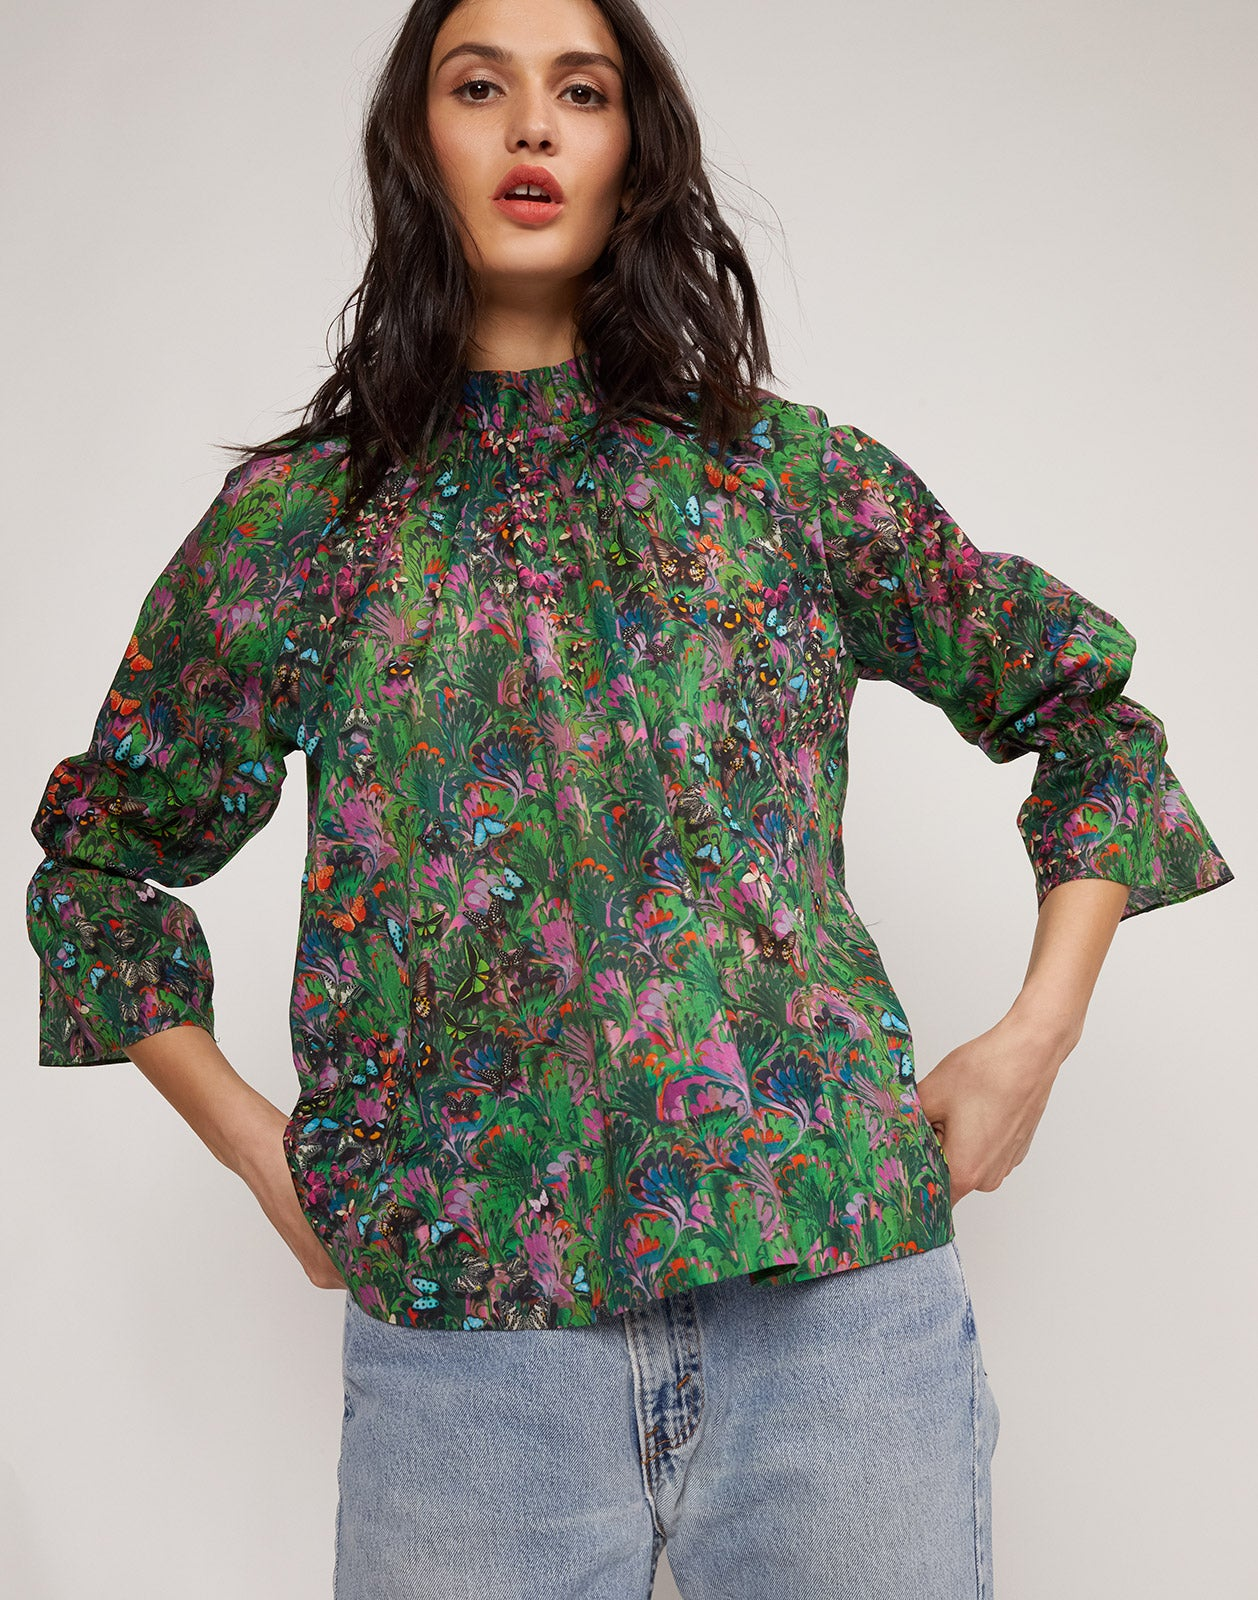 Close up view of model wearing Butterfly Cotton Waterfall Blouse.